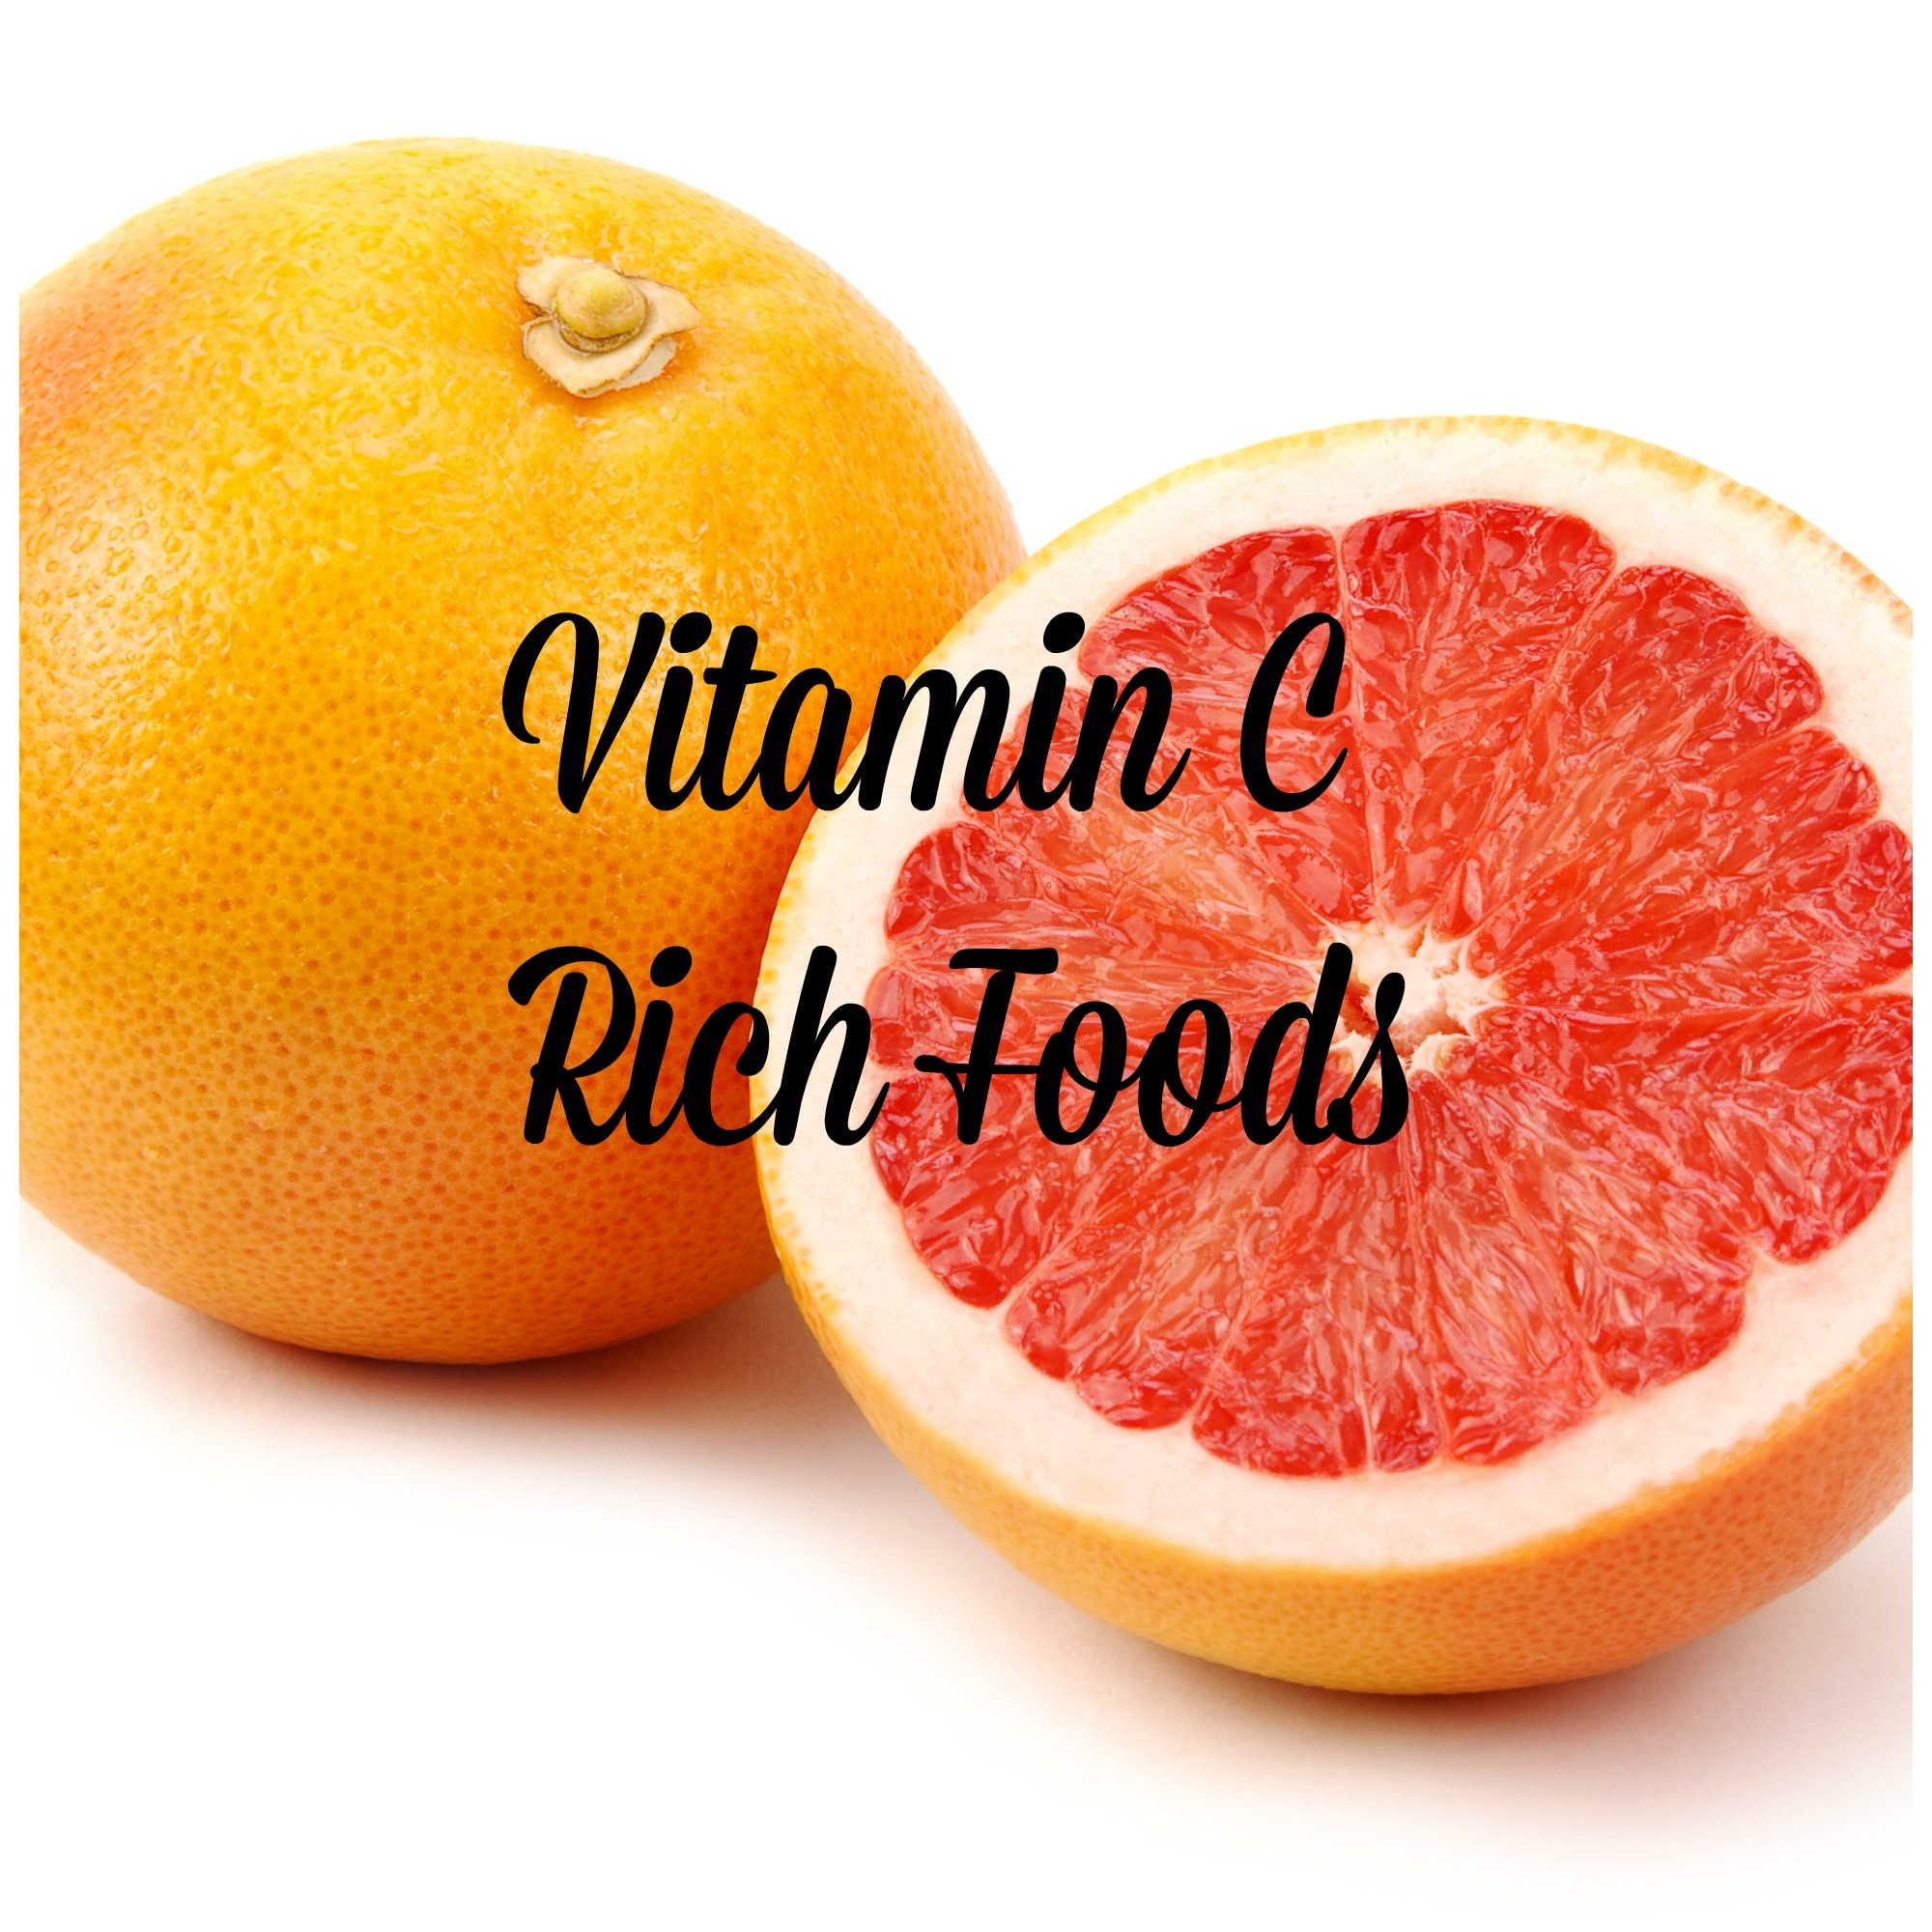 Vitamin C Rich Foods For A Healthy Immune System